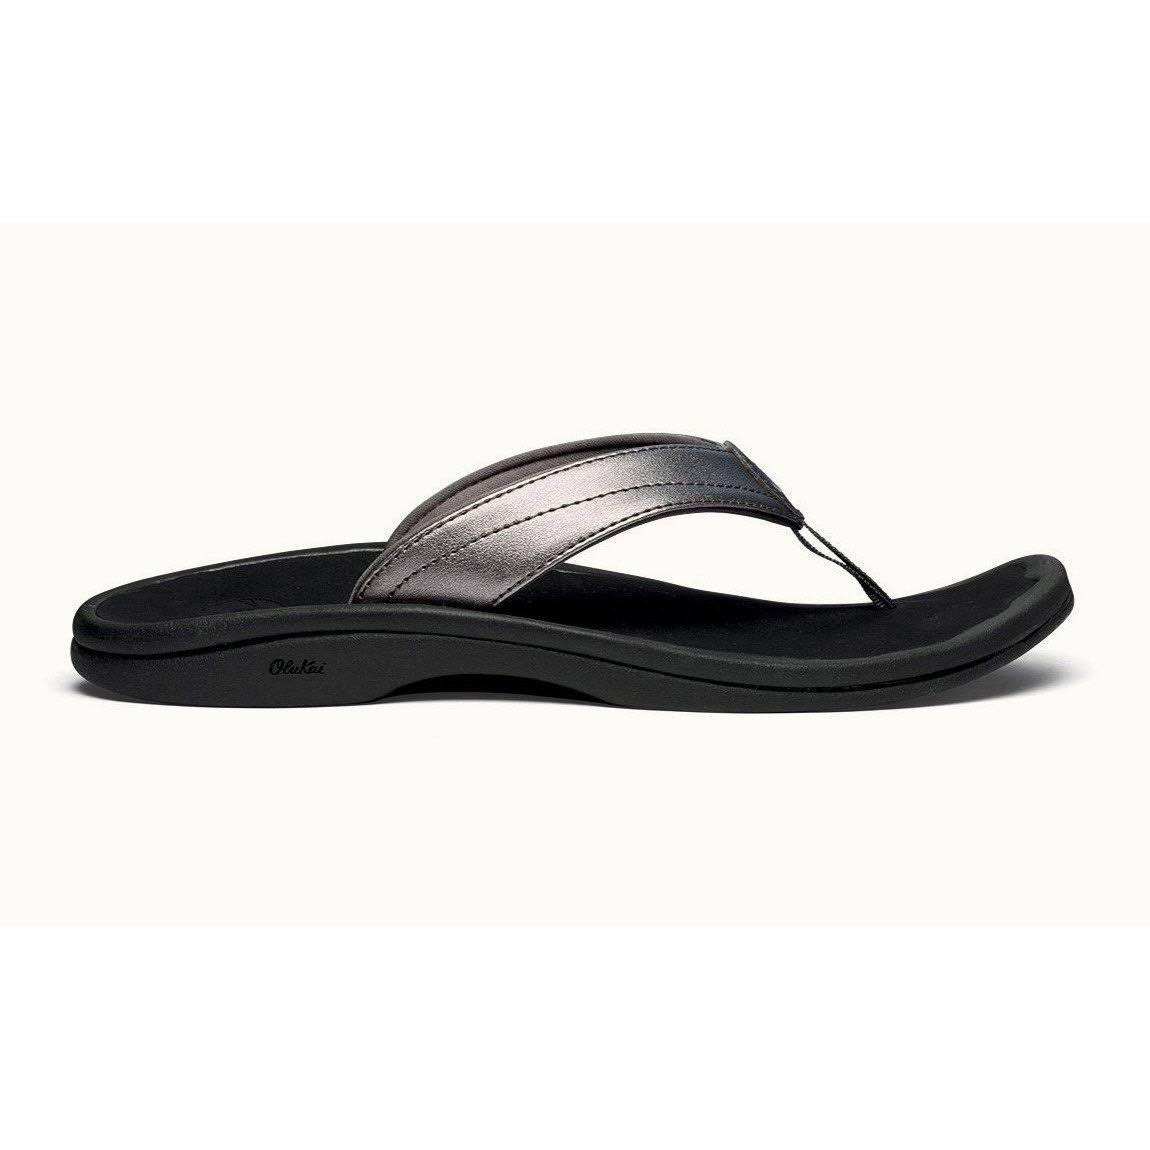 Olukai Ohana Sandals - Women's Pewter/Black / 8